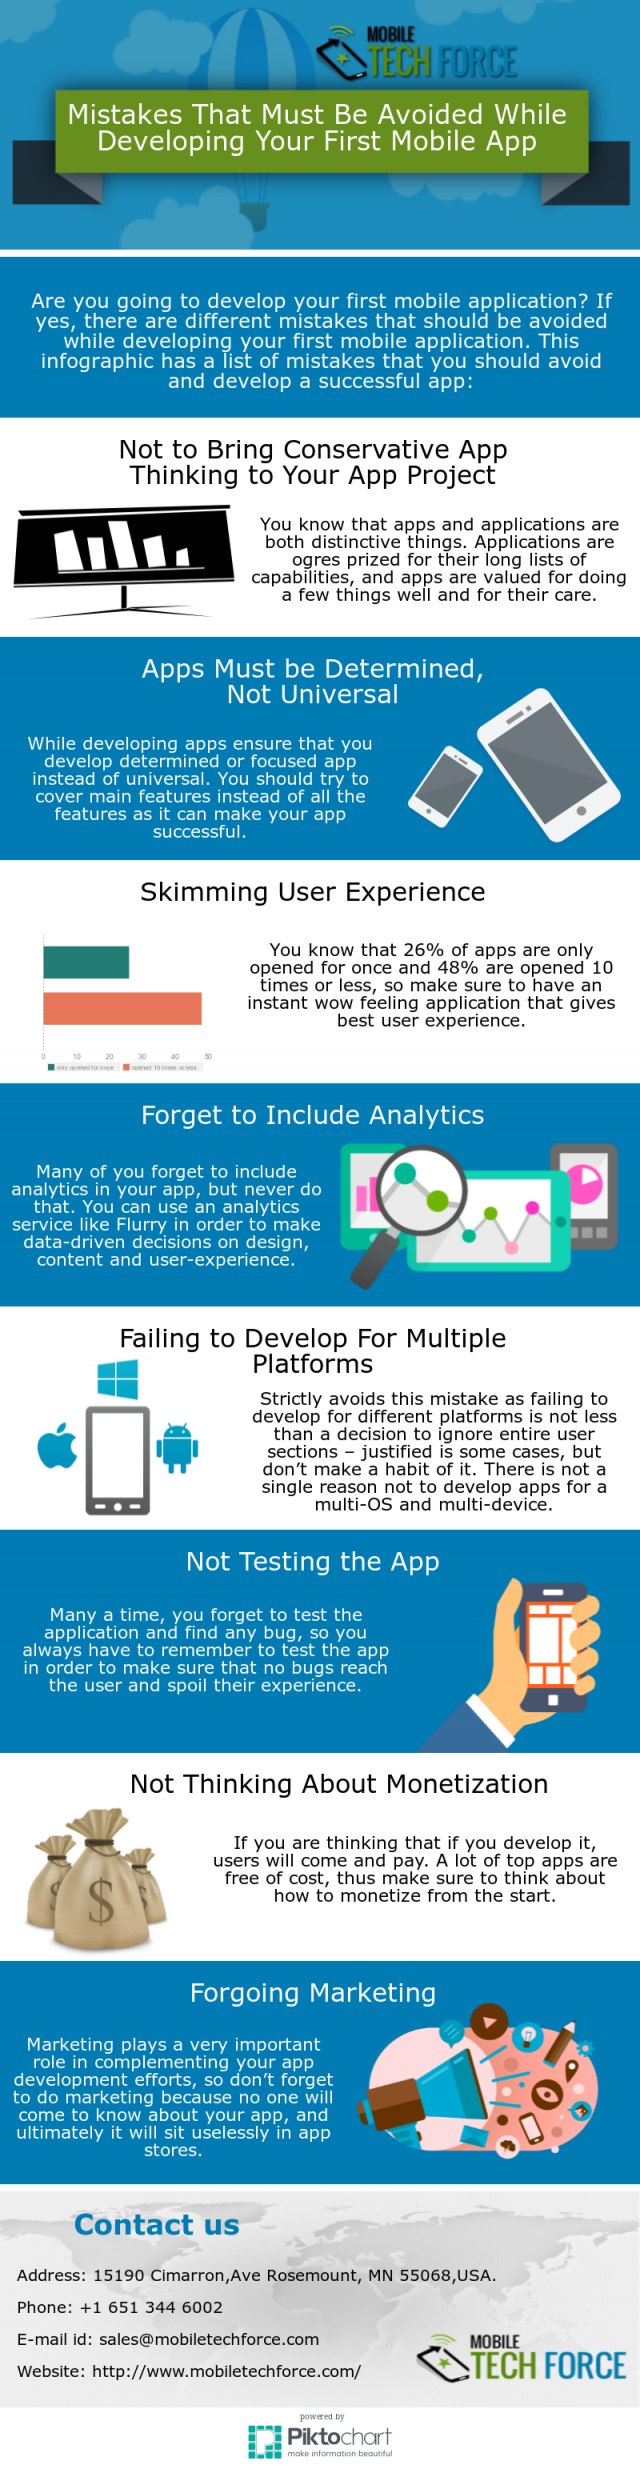 Mistakes That Must Be Avoided While Developing Your First Mobile App